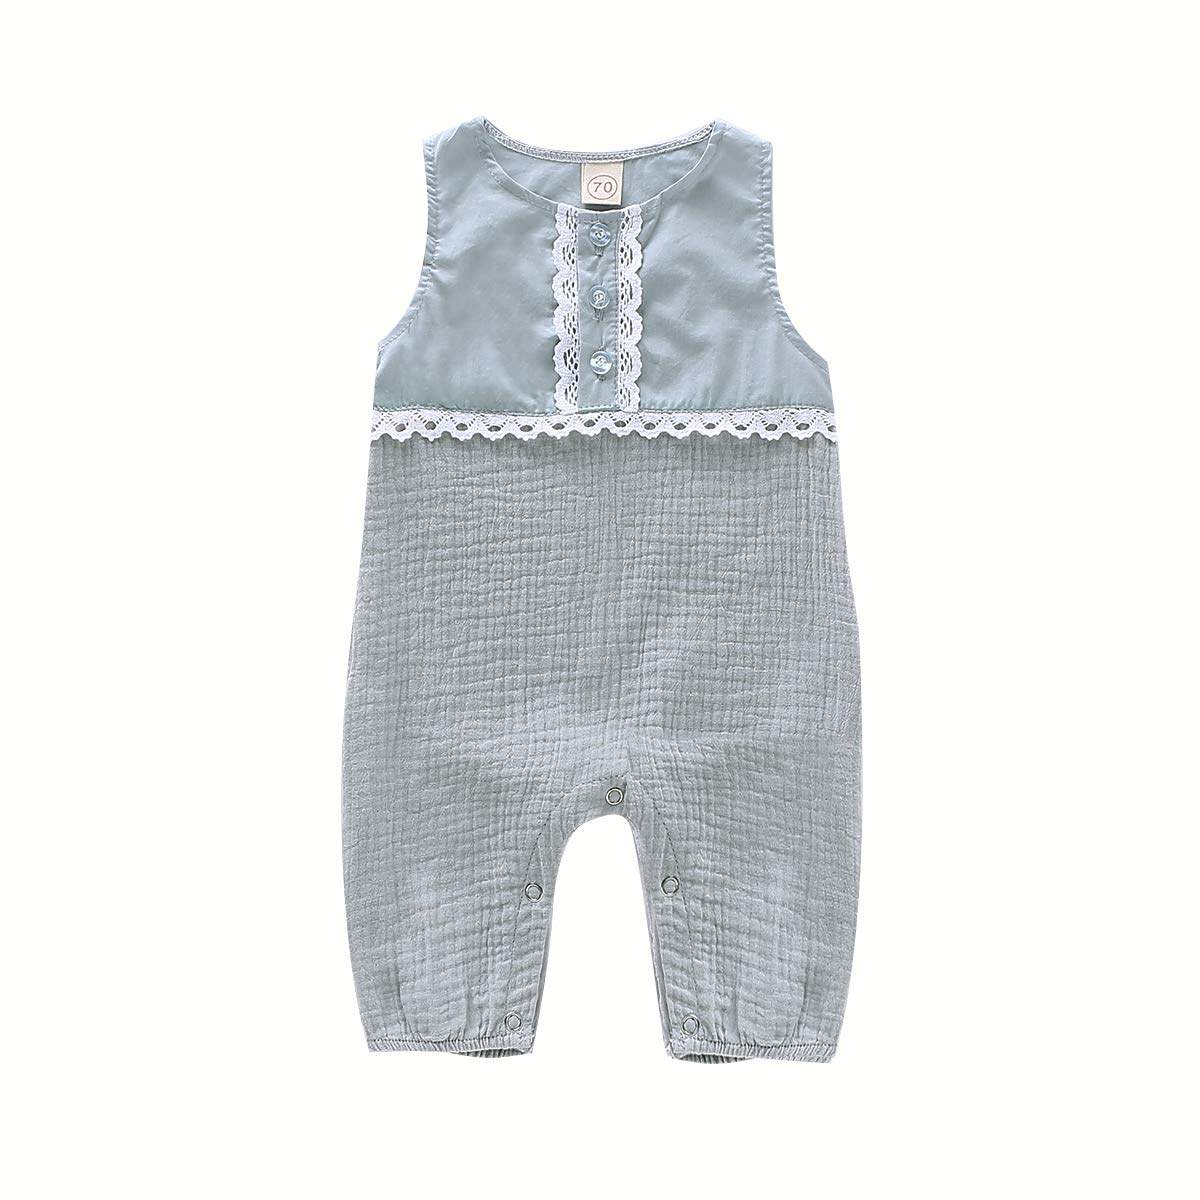 PROBABY Newborn Baby Girls Jumpsuit Romper Solid Cotton Linen Sleeveless One-Piece Bodysuits Toddler Girl Summer Outfits